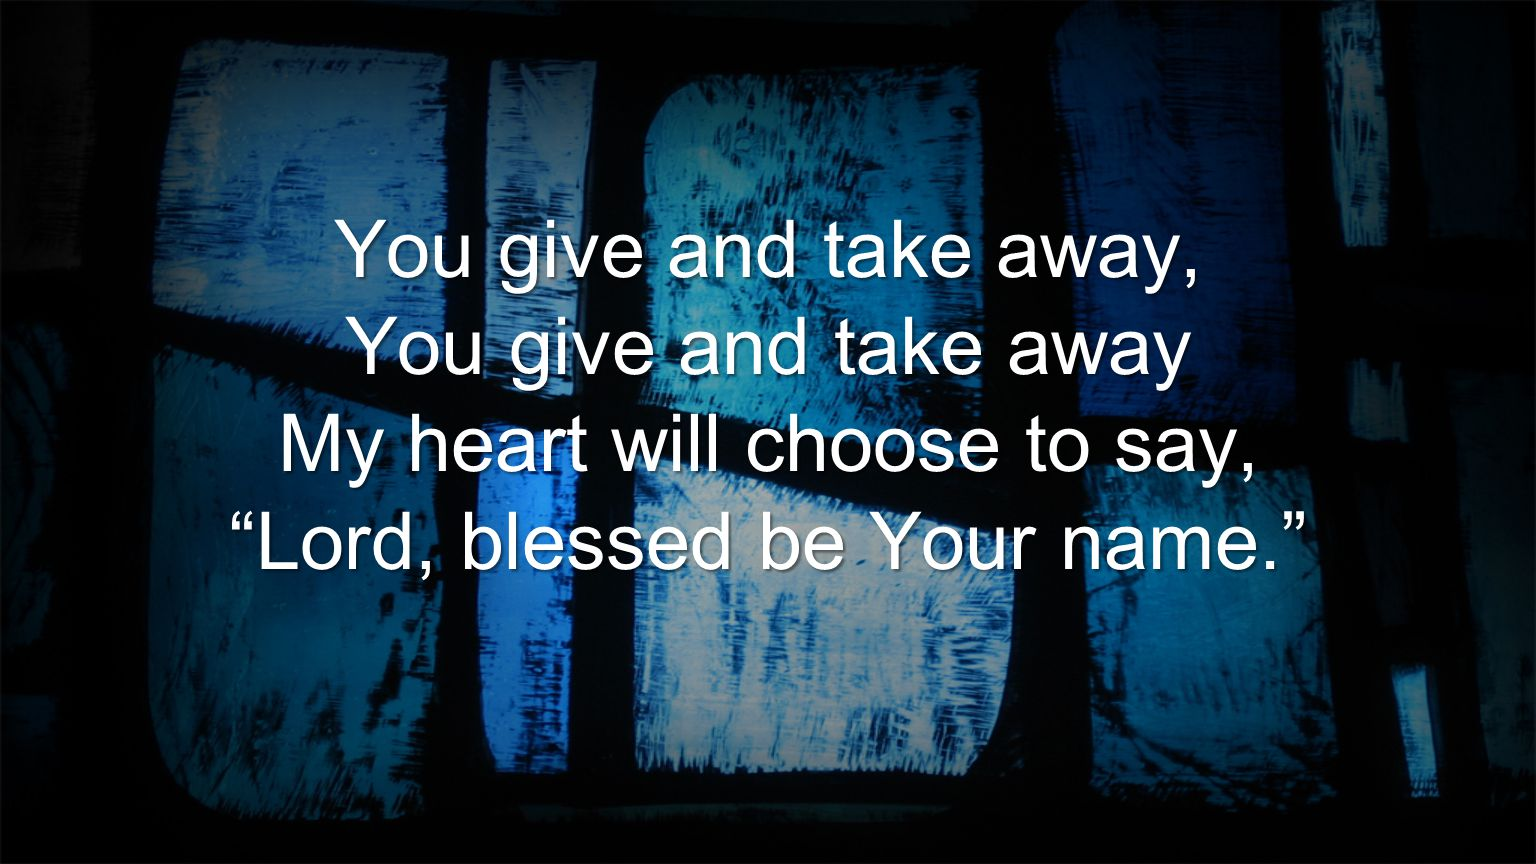 My heart will choose to say, Lord, blessed be Your name.